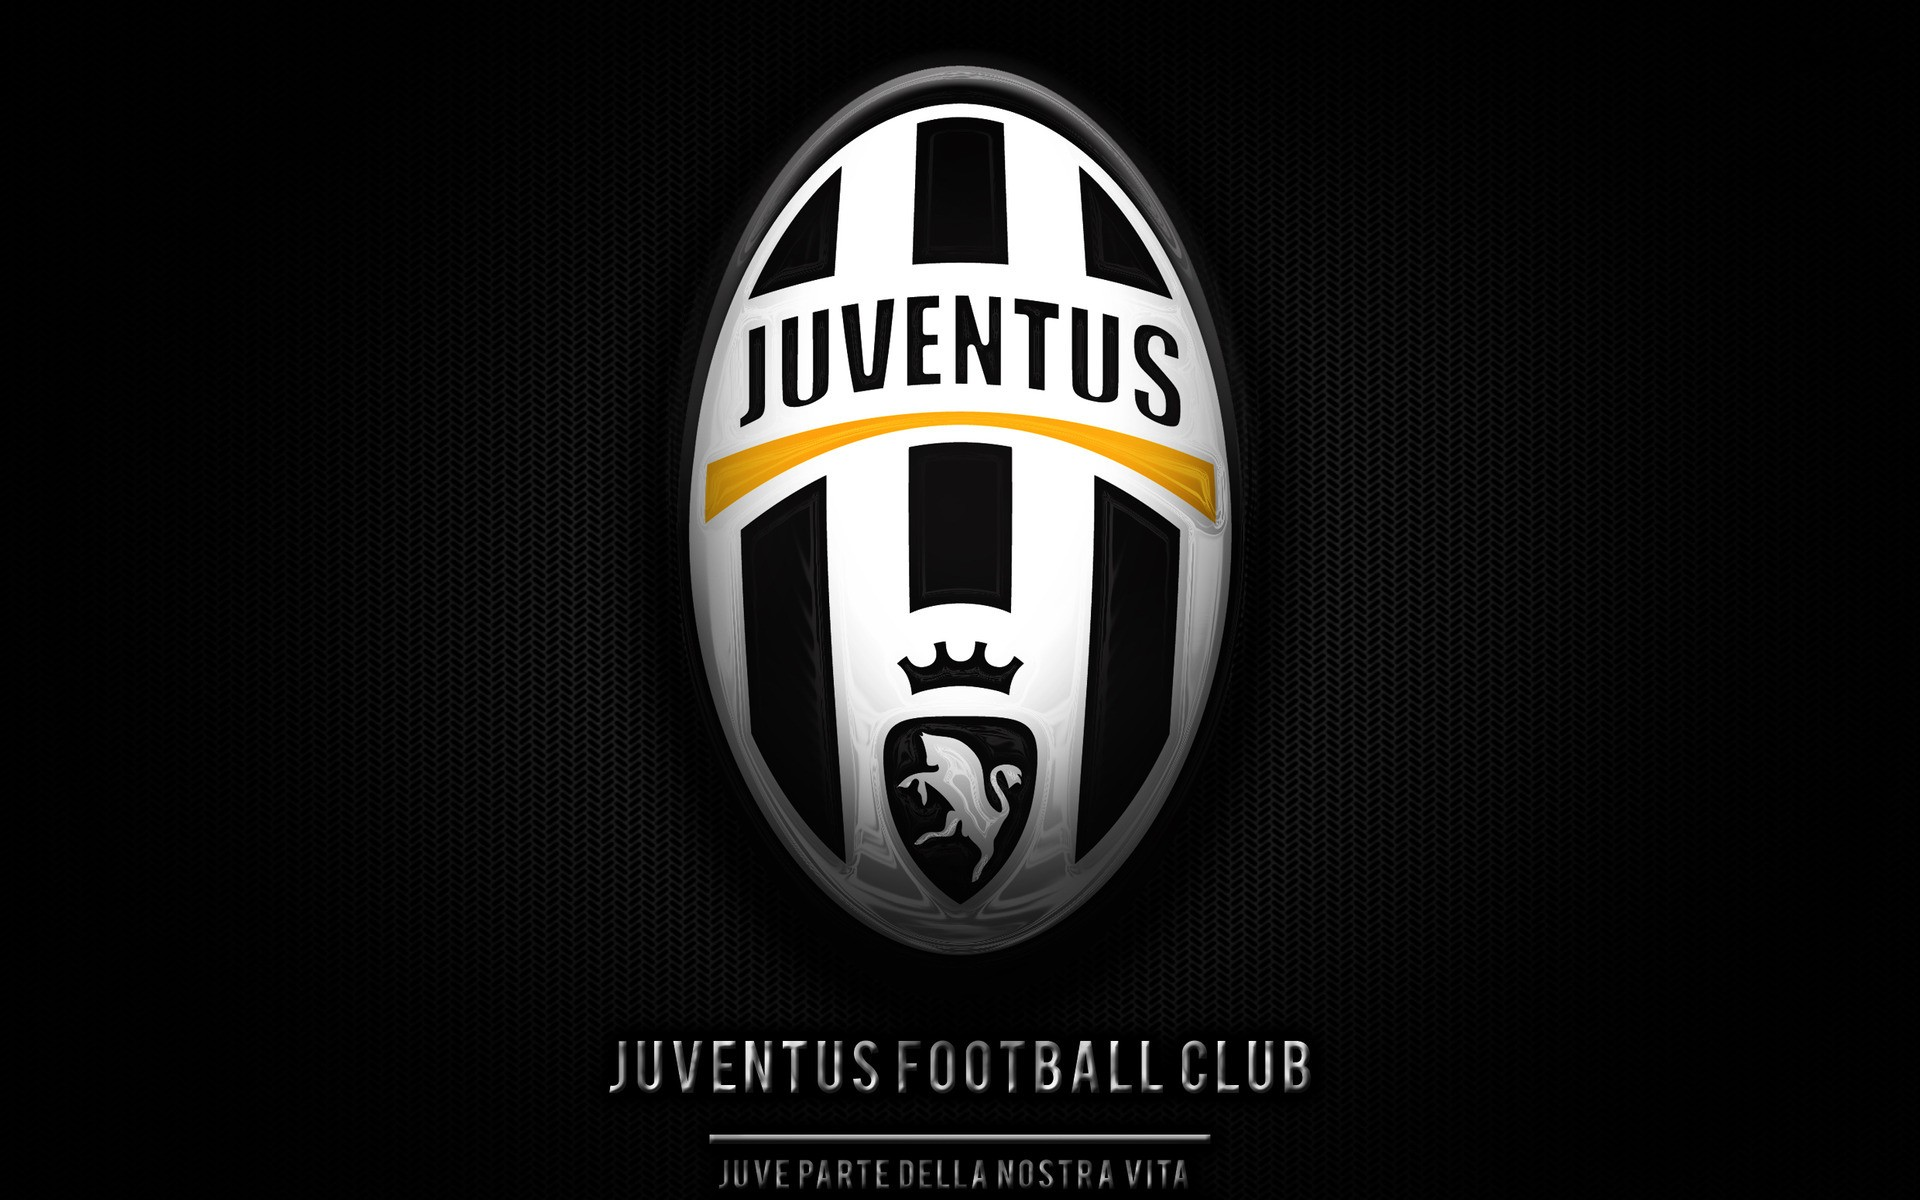 50 Juventus Wallpaper 2016 On Wallpapersafari